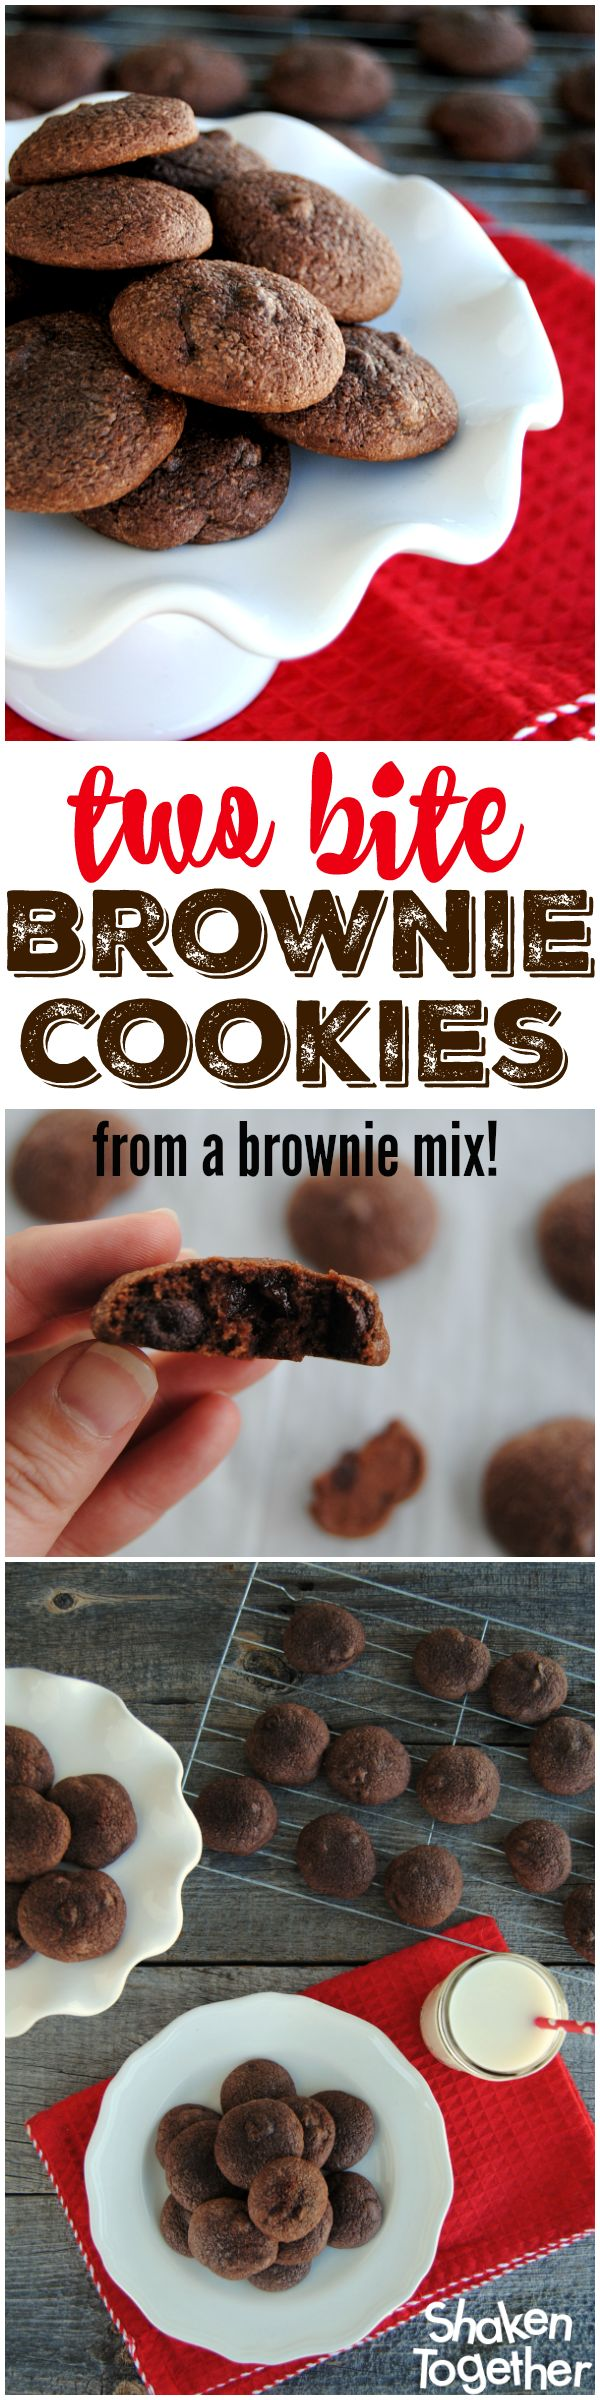 Soft and chewy, ultra chocolatey Two Bite Brownie Cookies! Better yet, they are super easy because they start with a brownie mix!